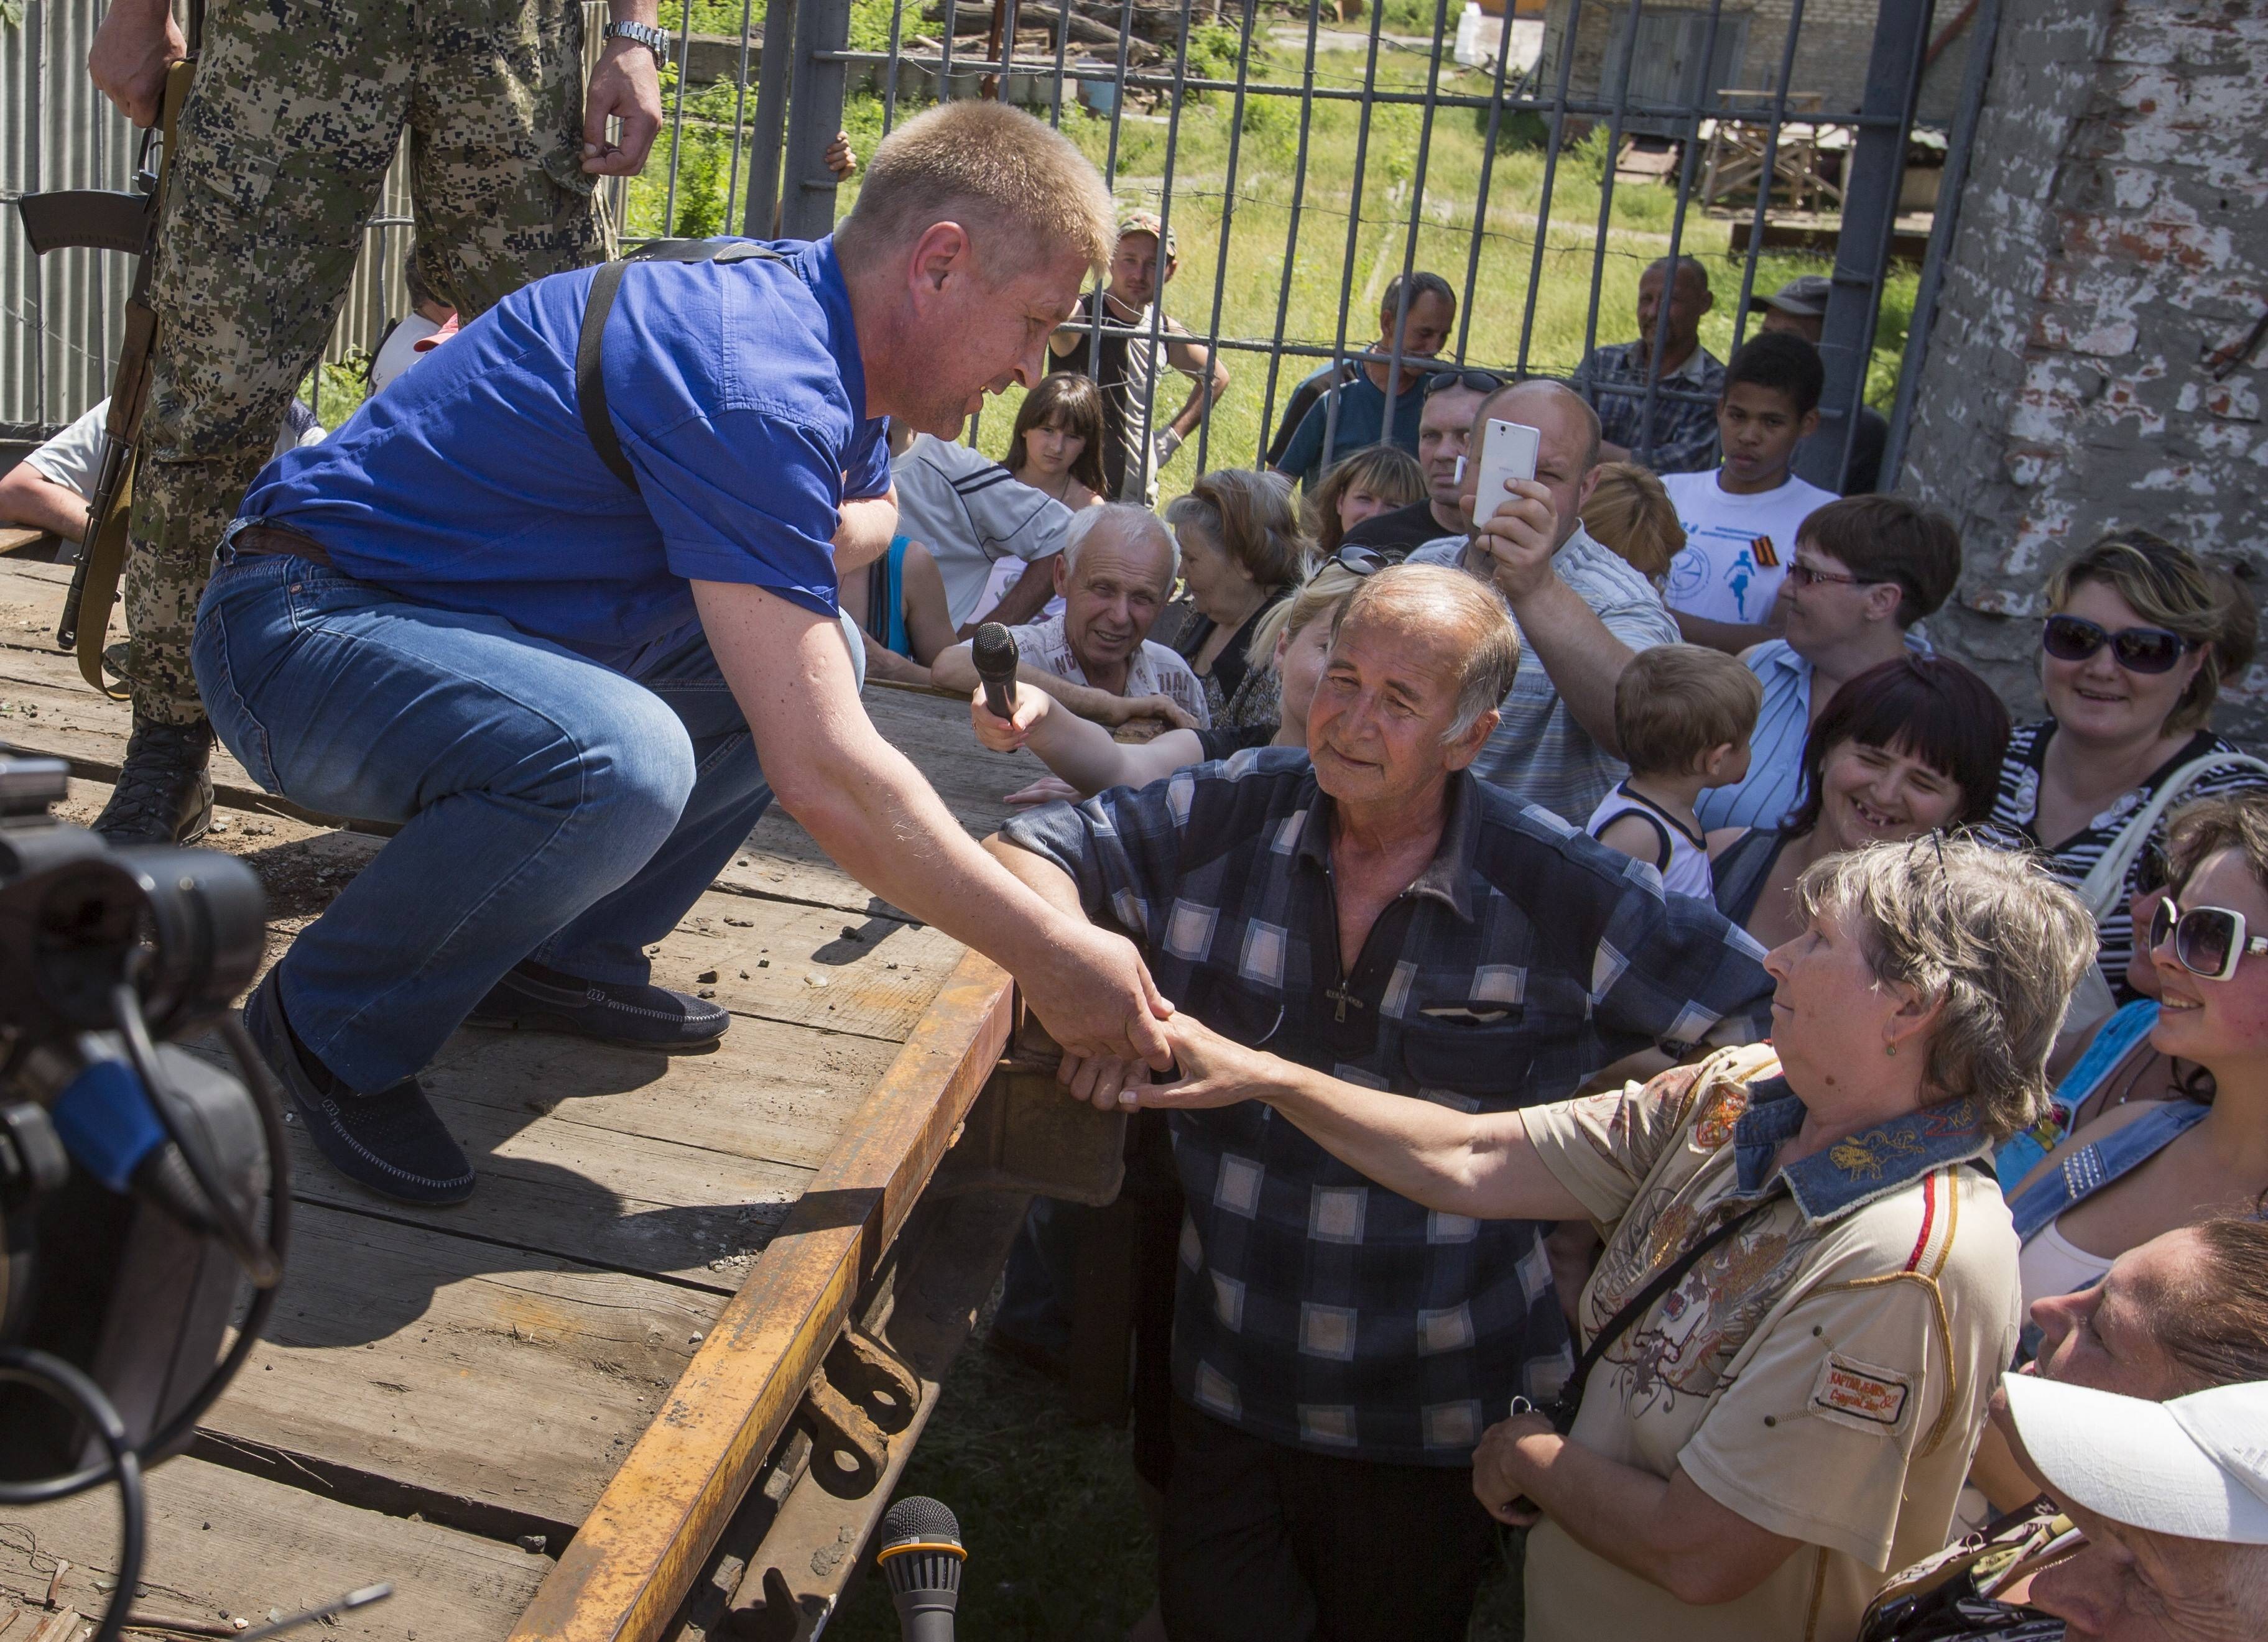 Vyacheslav Ponomarev, left, the self-proclaimed mayor of Slovyansk, shakes hands with a woman during his meeting with local citizens whose homes were ruined in a shelling in Slovyansk, eastern Ukraine. Residents of Slovyansk sounded exasperated and angry with both the warring sides.